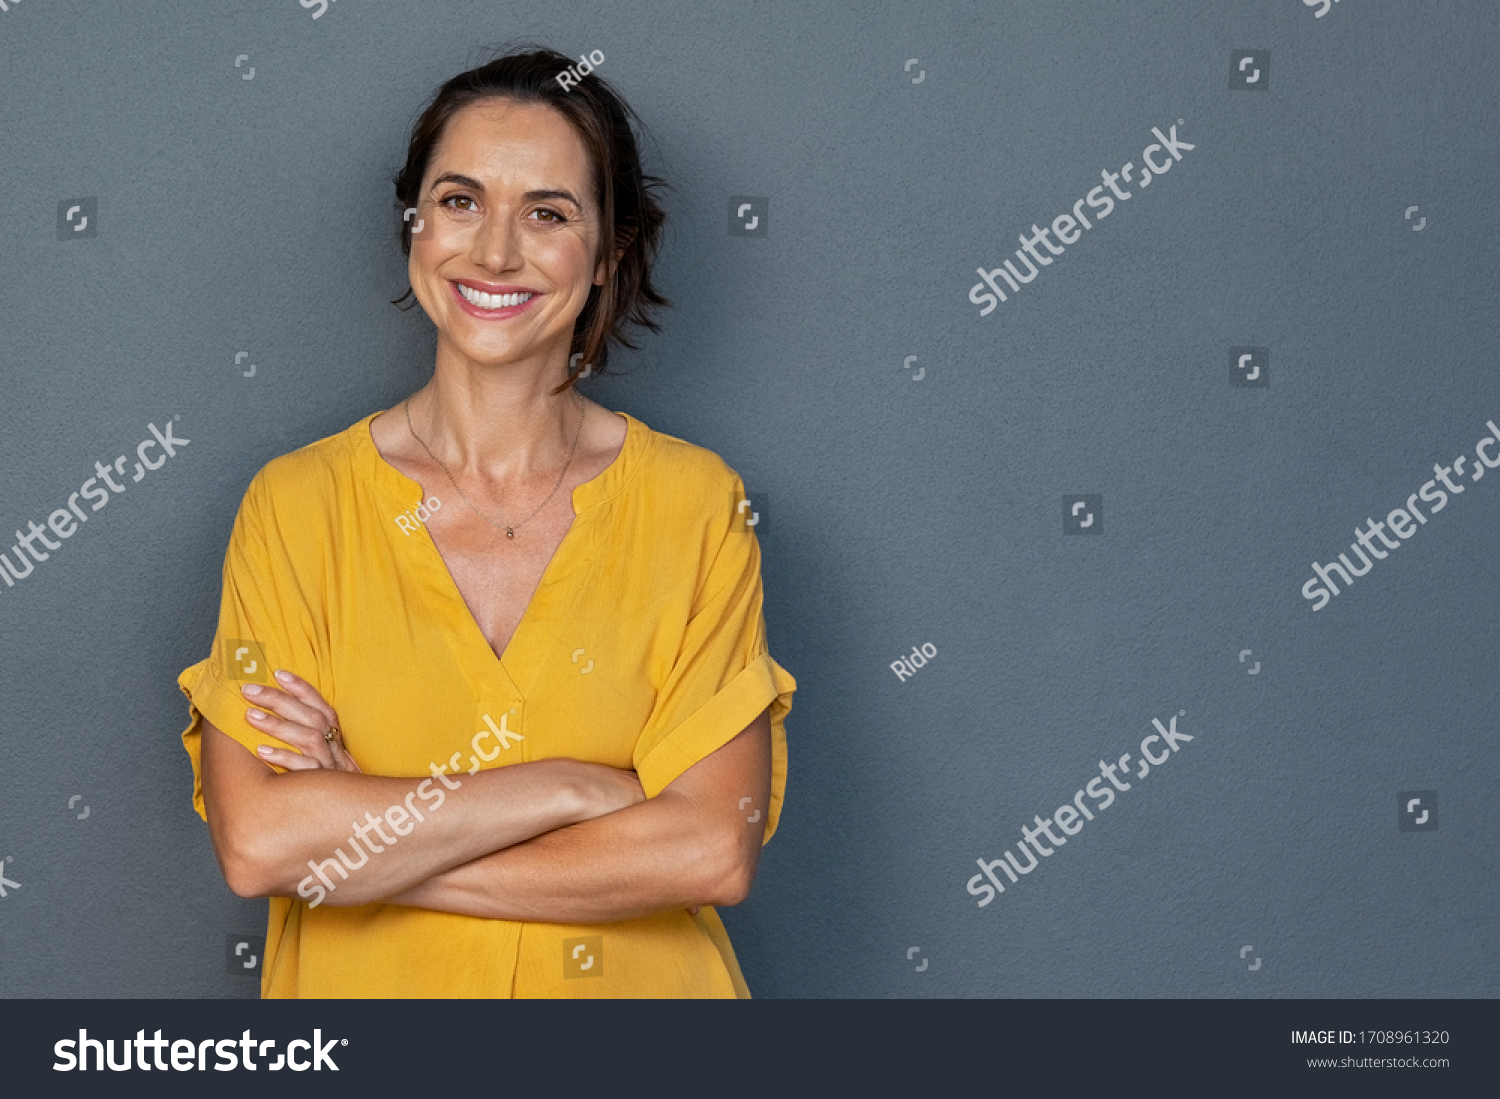 Confident mature woman with crossed arms in casual clothing with copy space. Successful smiling woman with big grin looking at camera. Beautiful positive businesswoman standing against grey background #1708961320